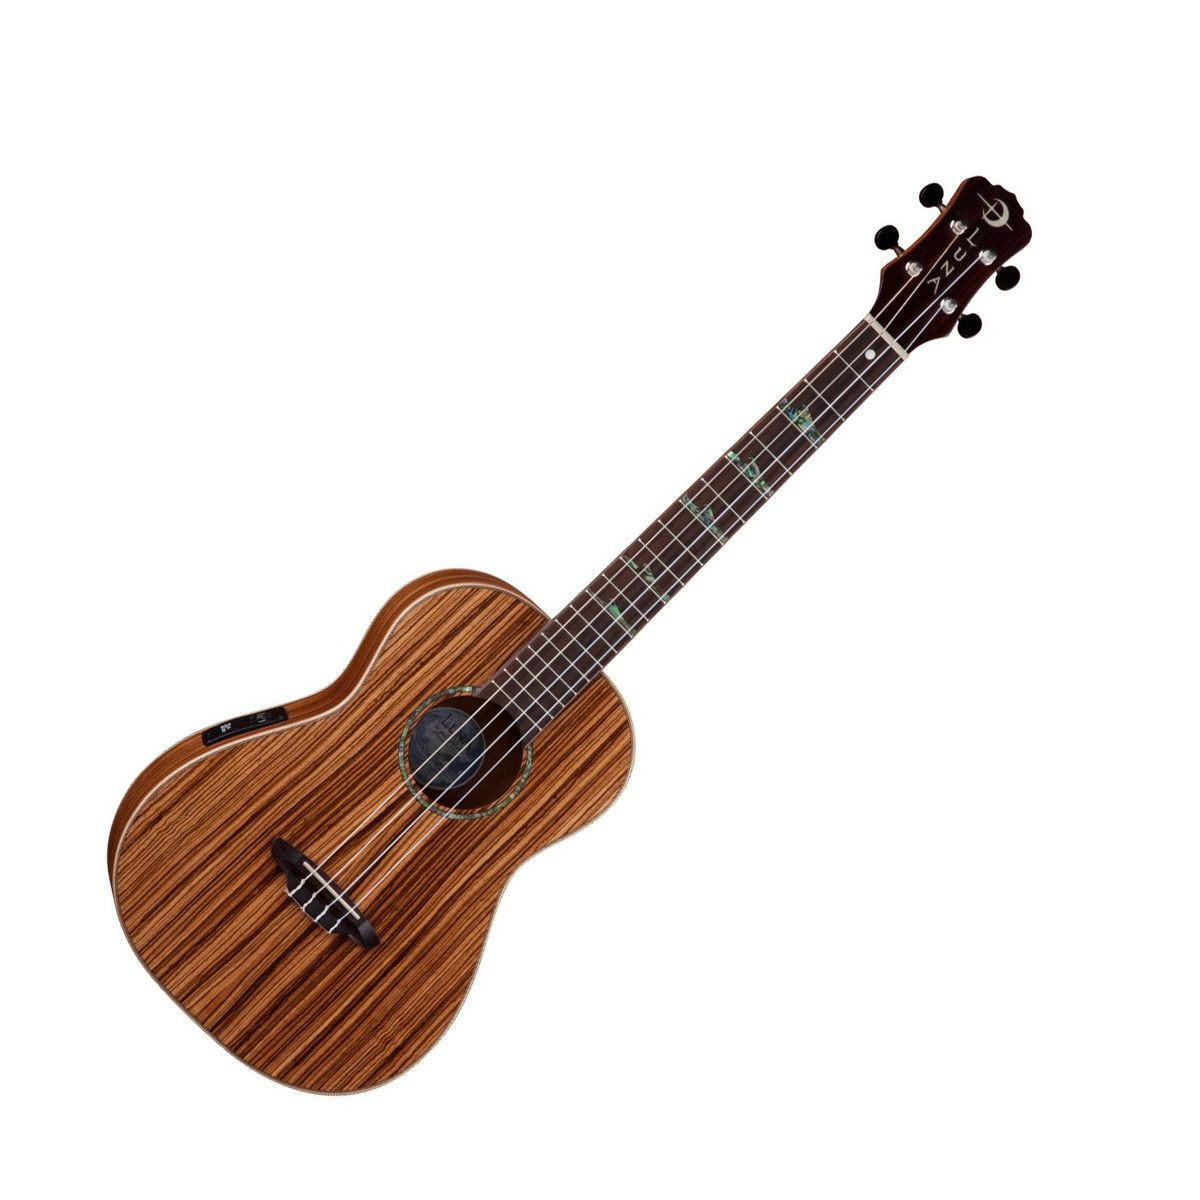 Luna High Tide Baritone Electro Acoustic Ukulele, Zebrawood at Gear4music.com